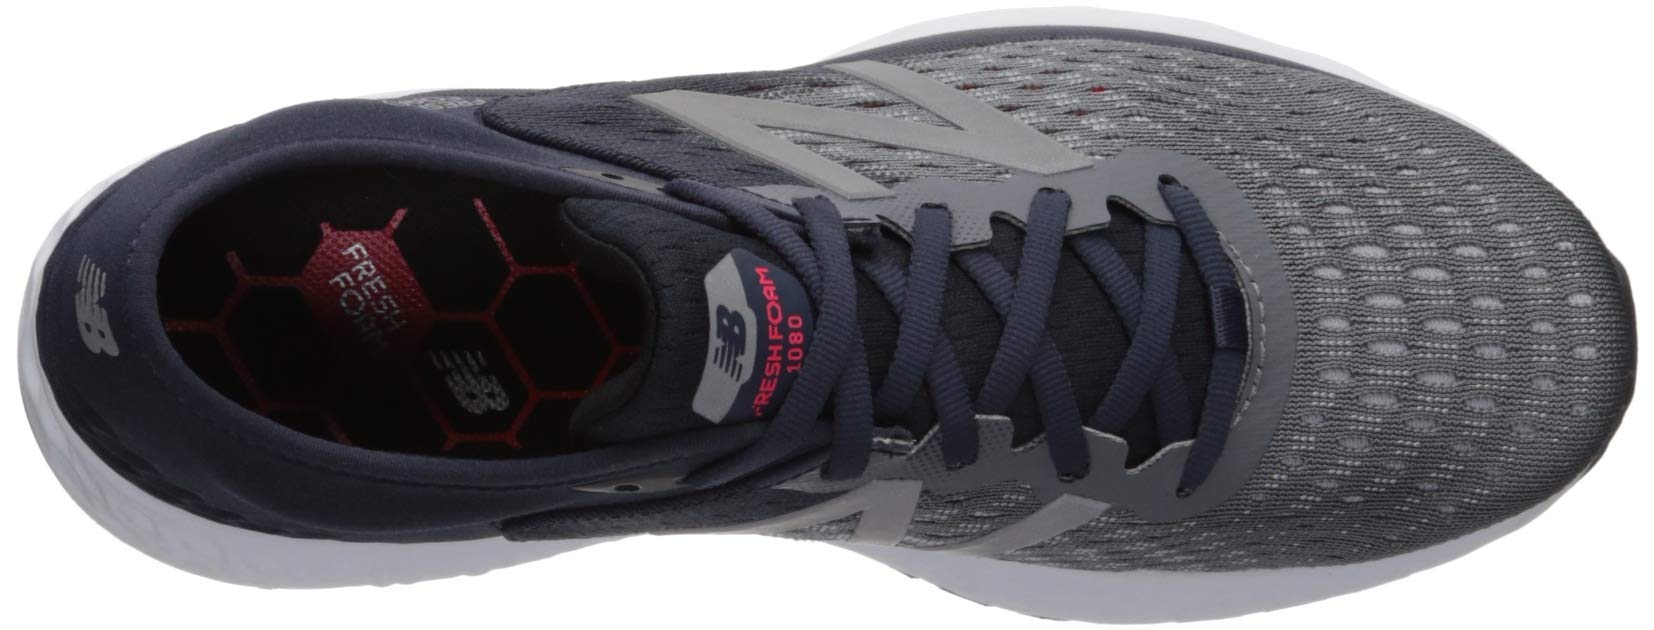 New Balance Men's 1080v9 Fresh Foam Running Shoe, Gunmetal/Outerspace/Energy red, 7 D US by New Balance (Image #8)